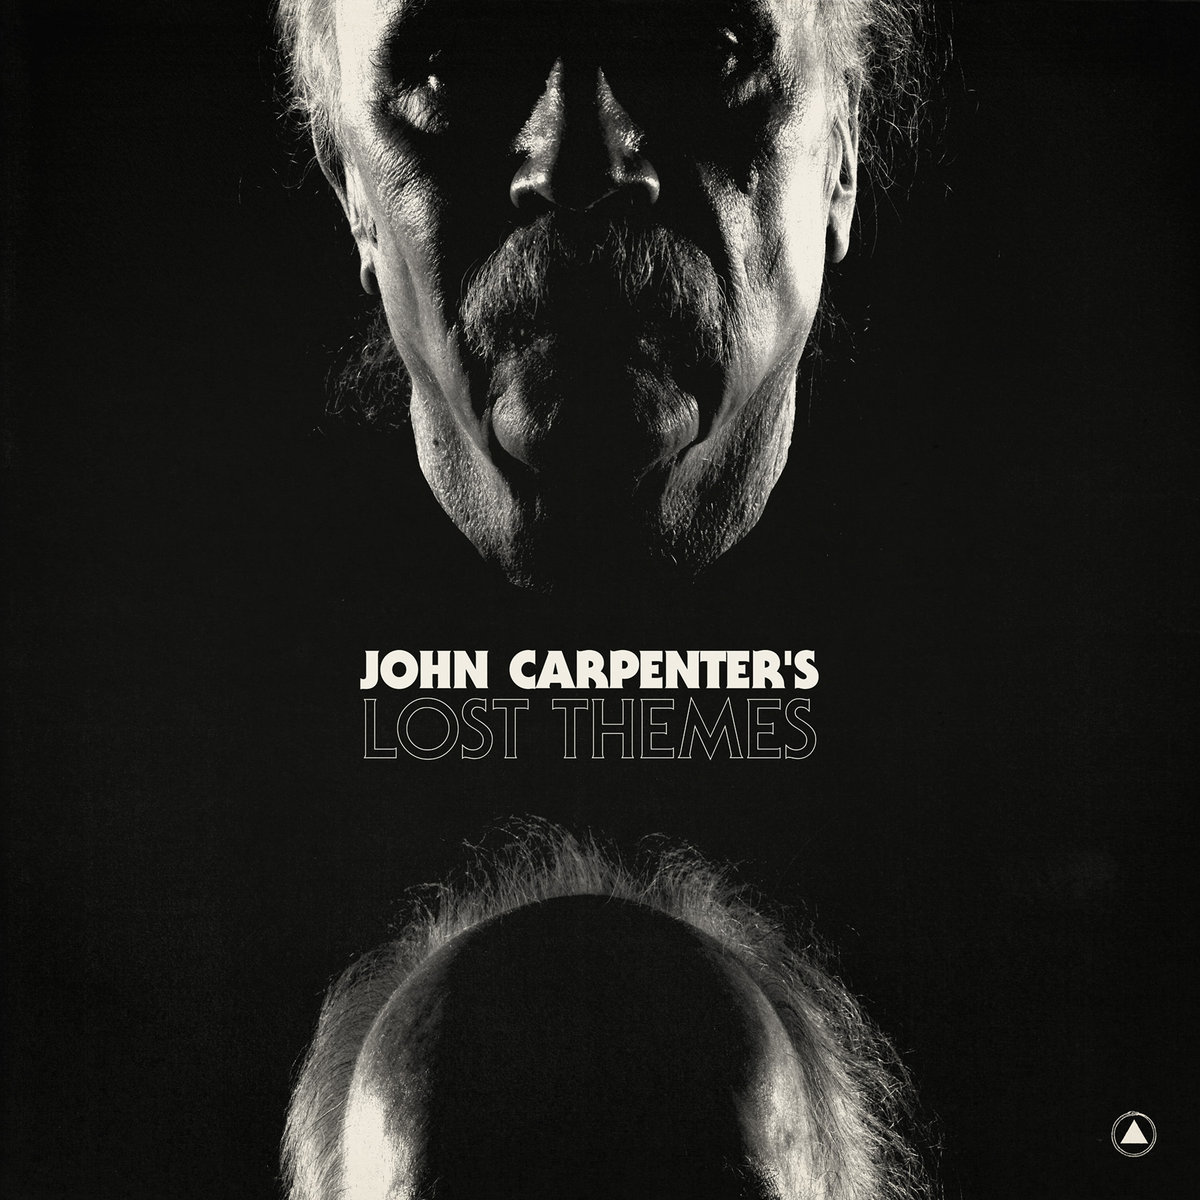 JOHN CARPENTER Lost Themes - Vinyl LP (black)